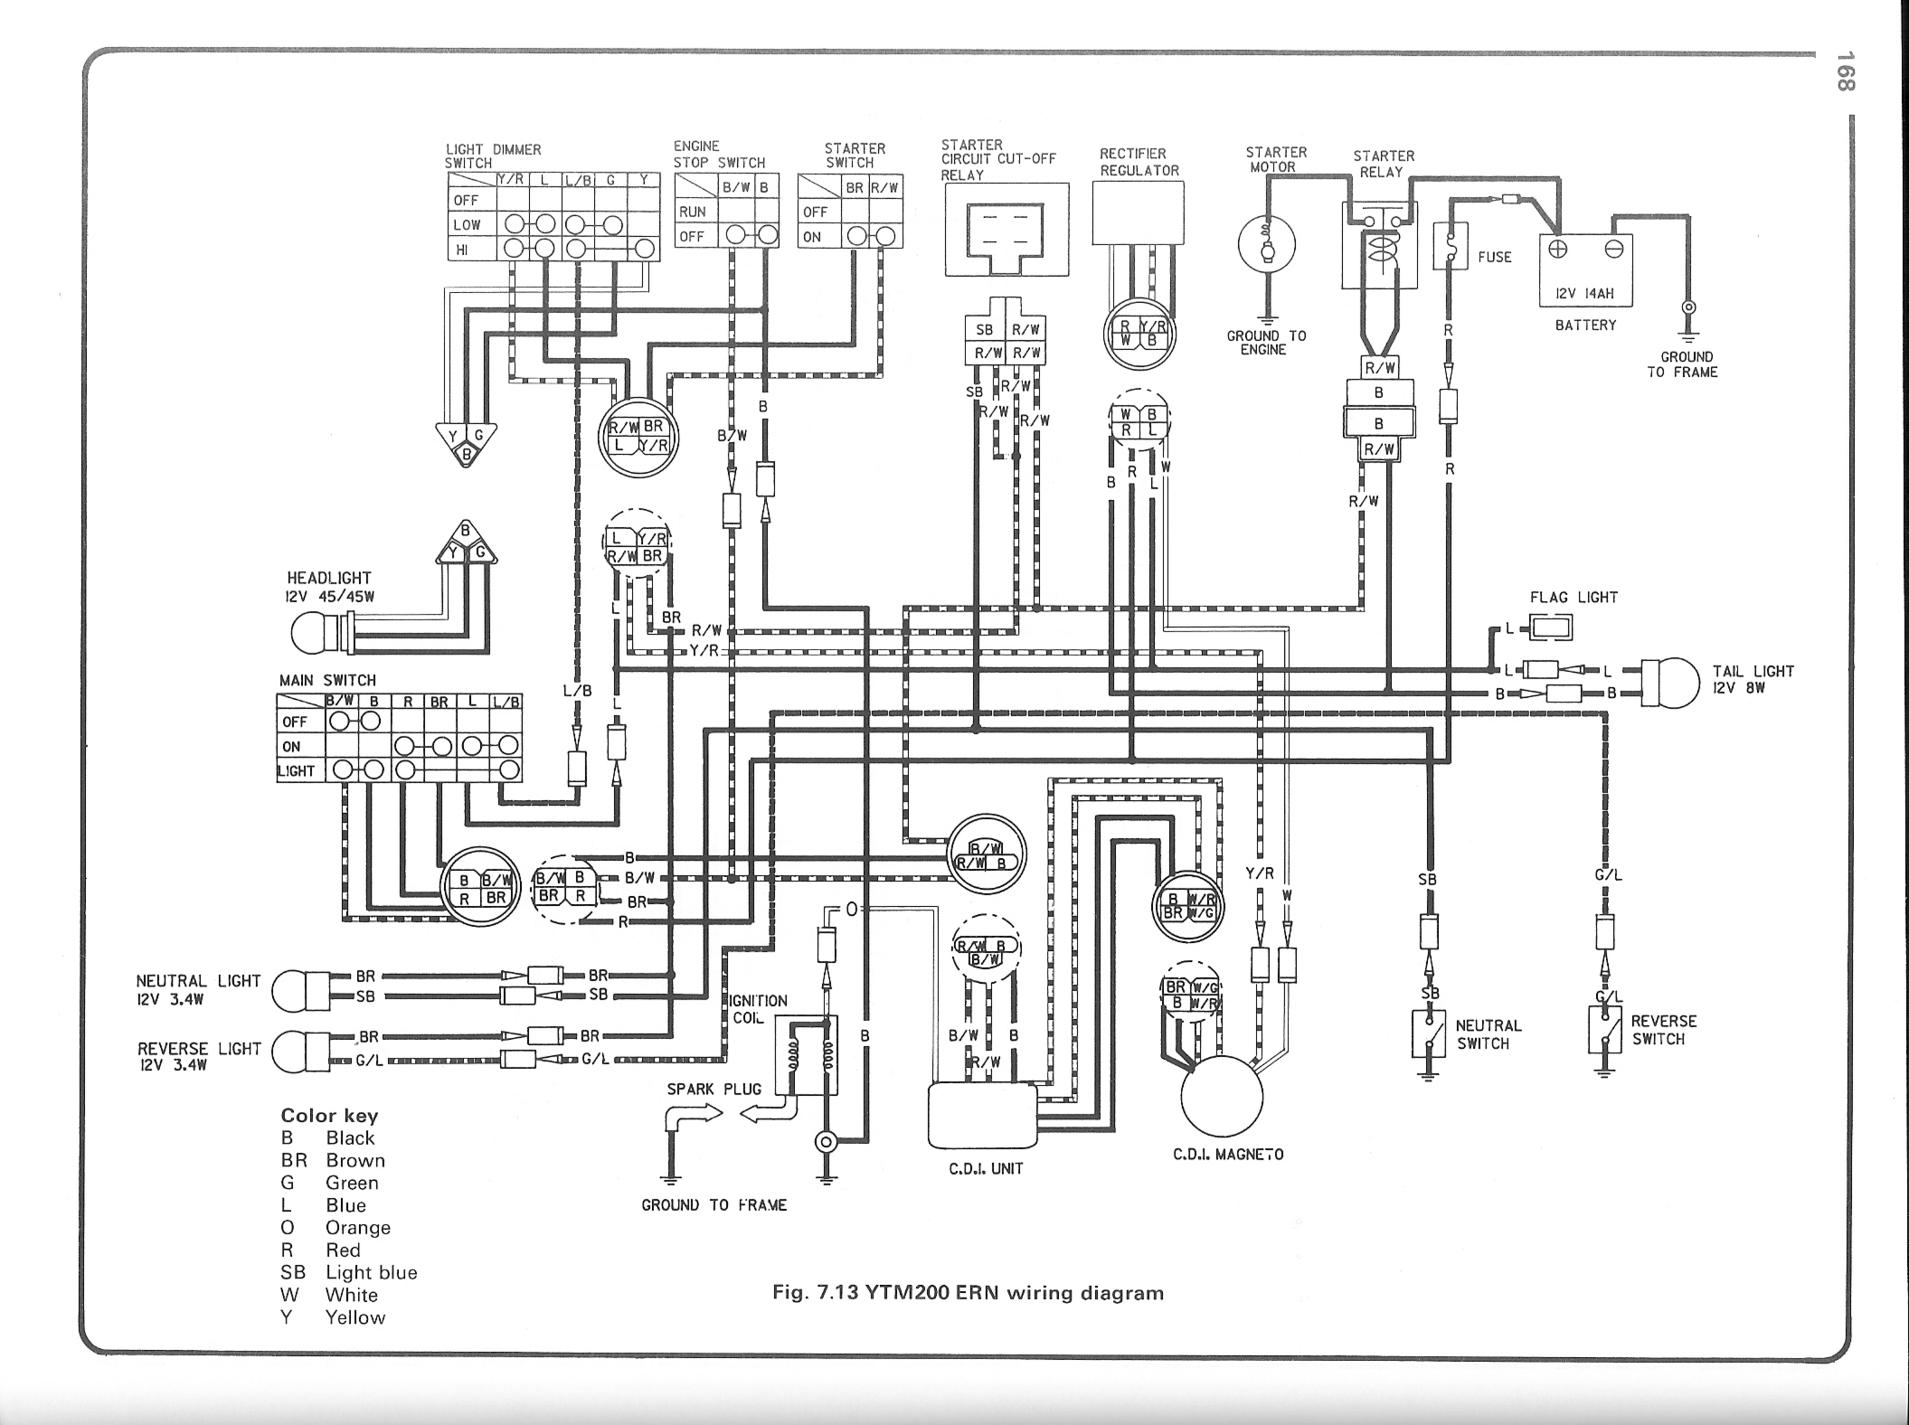 yamaha 350 warrior wiring diagram wiring diagram yamaha warrior wiring diagram and hernes